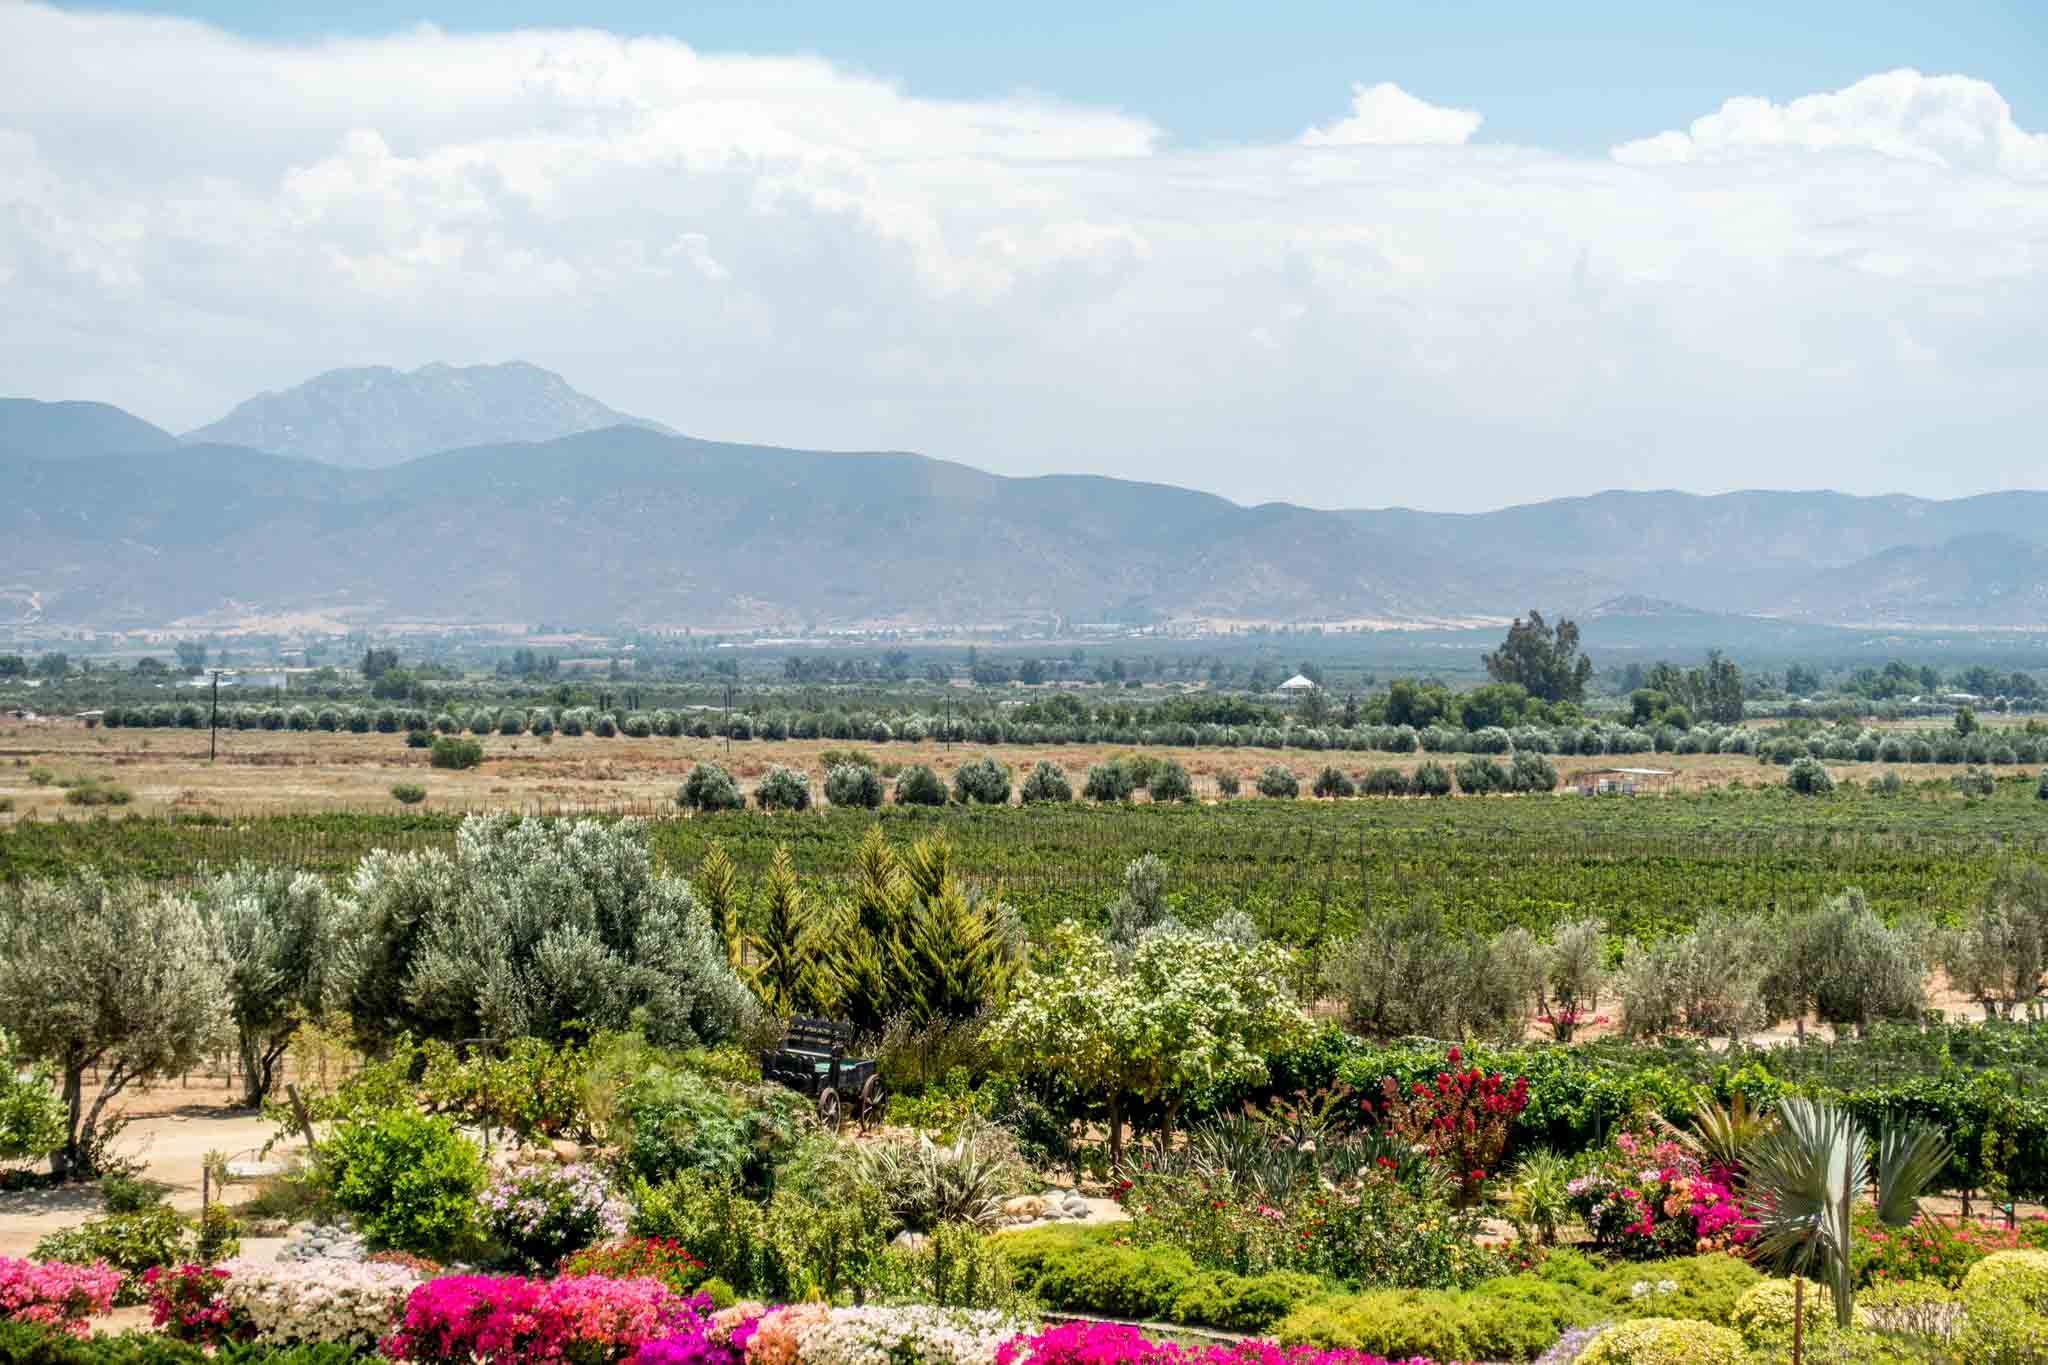 The hills and vineyards of the Valle de Guadalupe in Baja, Mexico